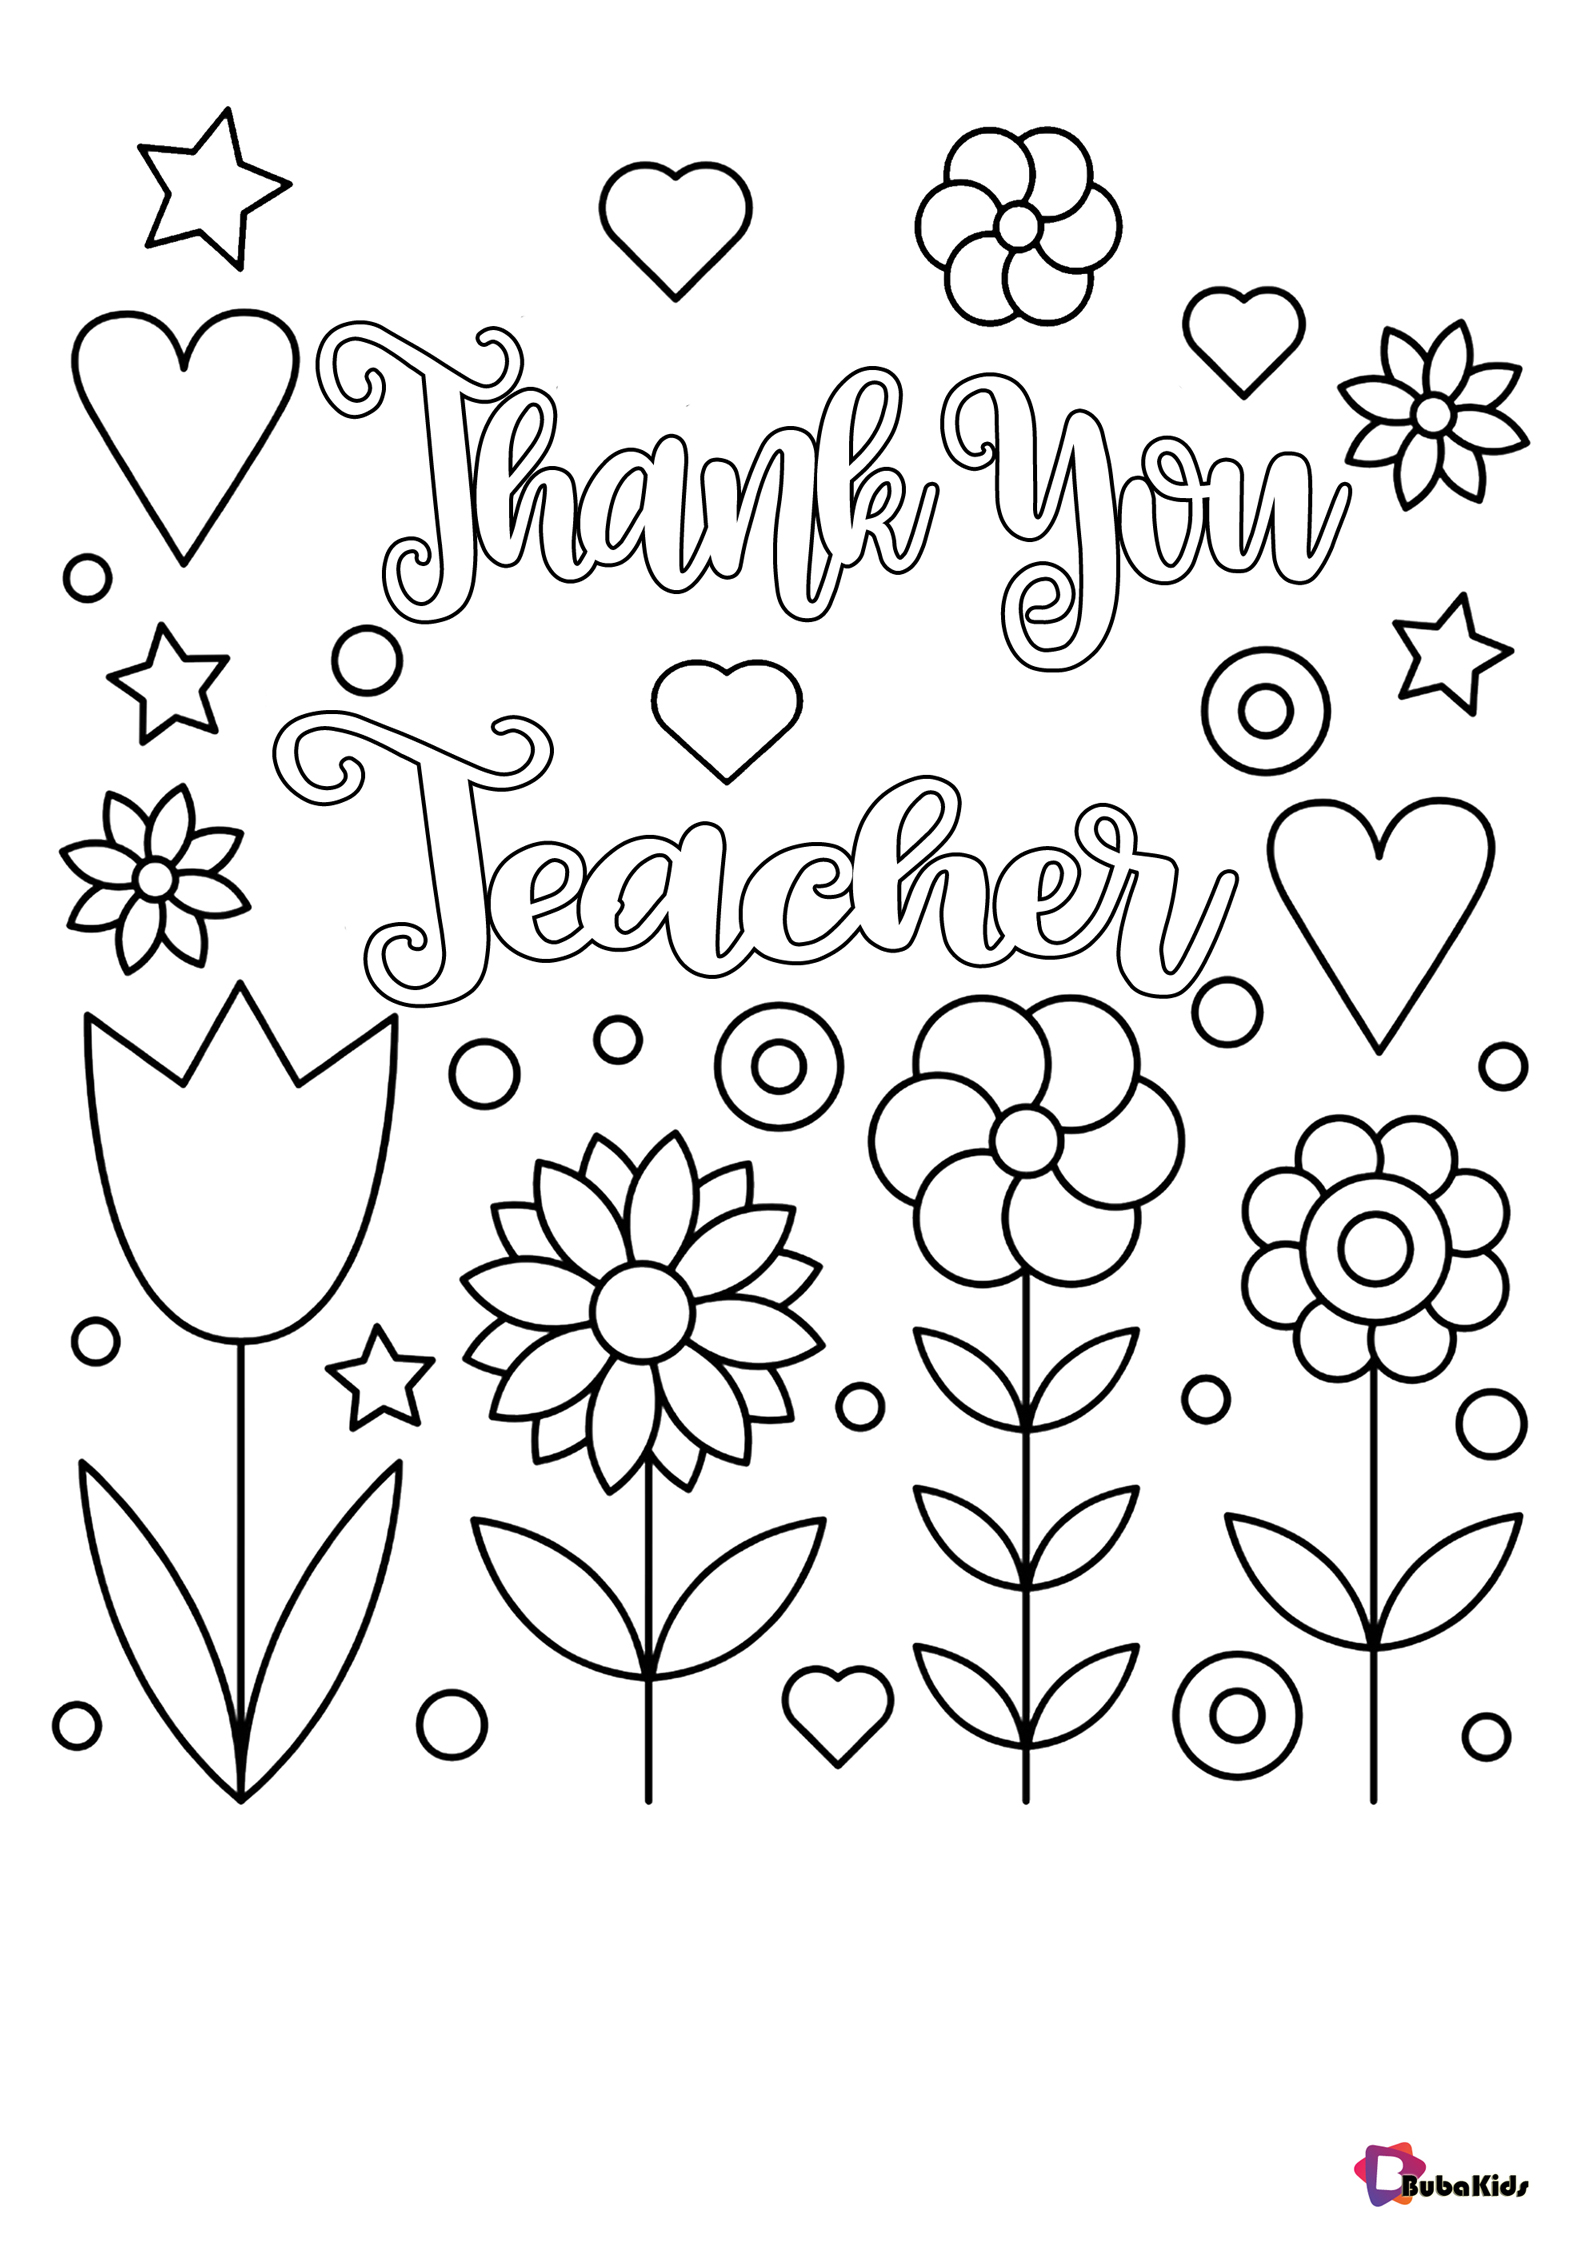 coloring pages for teachers appreciation teacher appreciation day coloring pages thank you teacher appreciation pages coloring for teachers